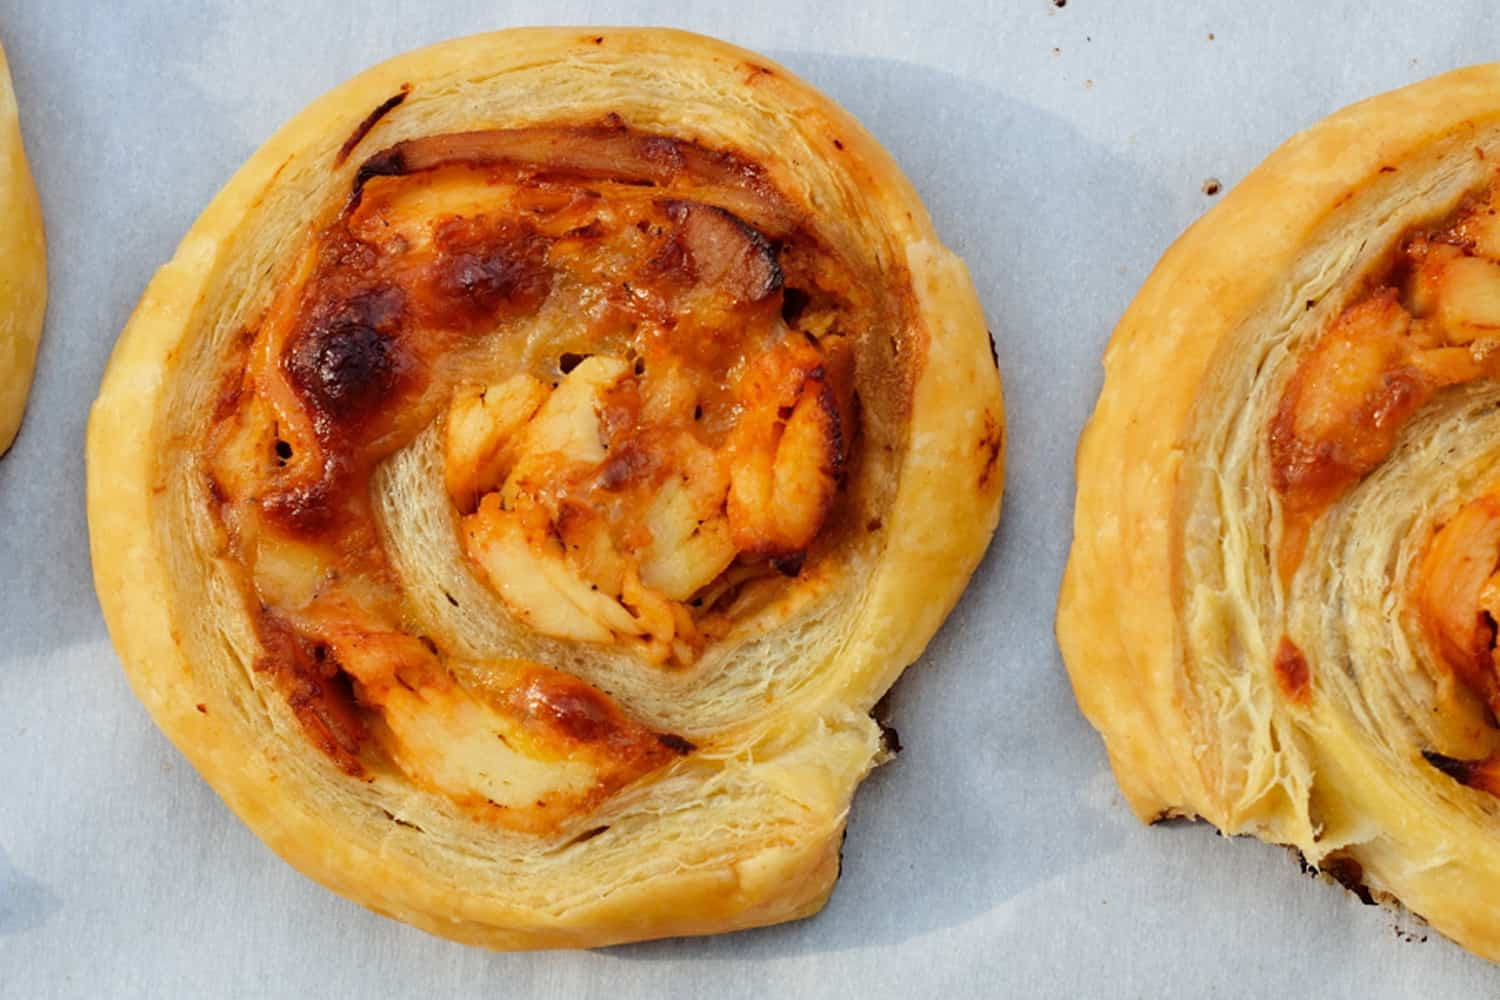 BBQ Chicken Pinwheels are a simple puff pastry appetizer, made with chicken, BBQ sauce, mayo and cheese. Easy, cheesy and deliciously flaky, it'll become one of your go-to pinwheel recipes. #puffpastryrecipes #appetizerrecipes #pinwheels www.savoryexperiments.com